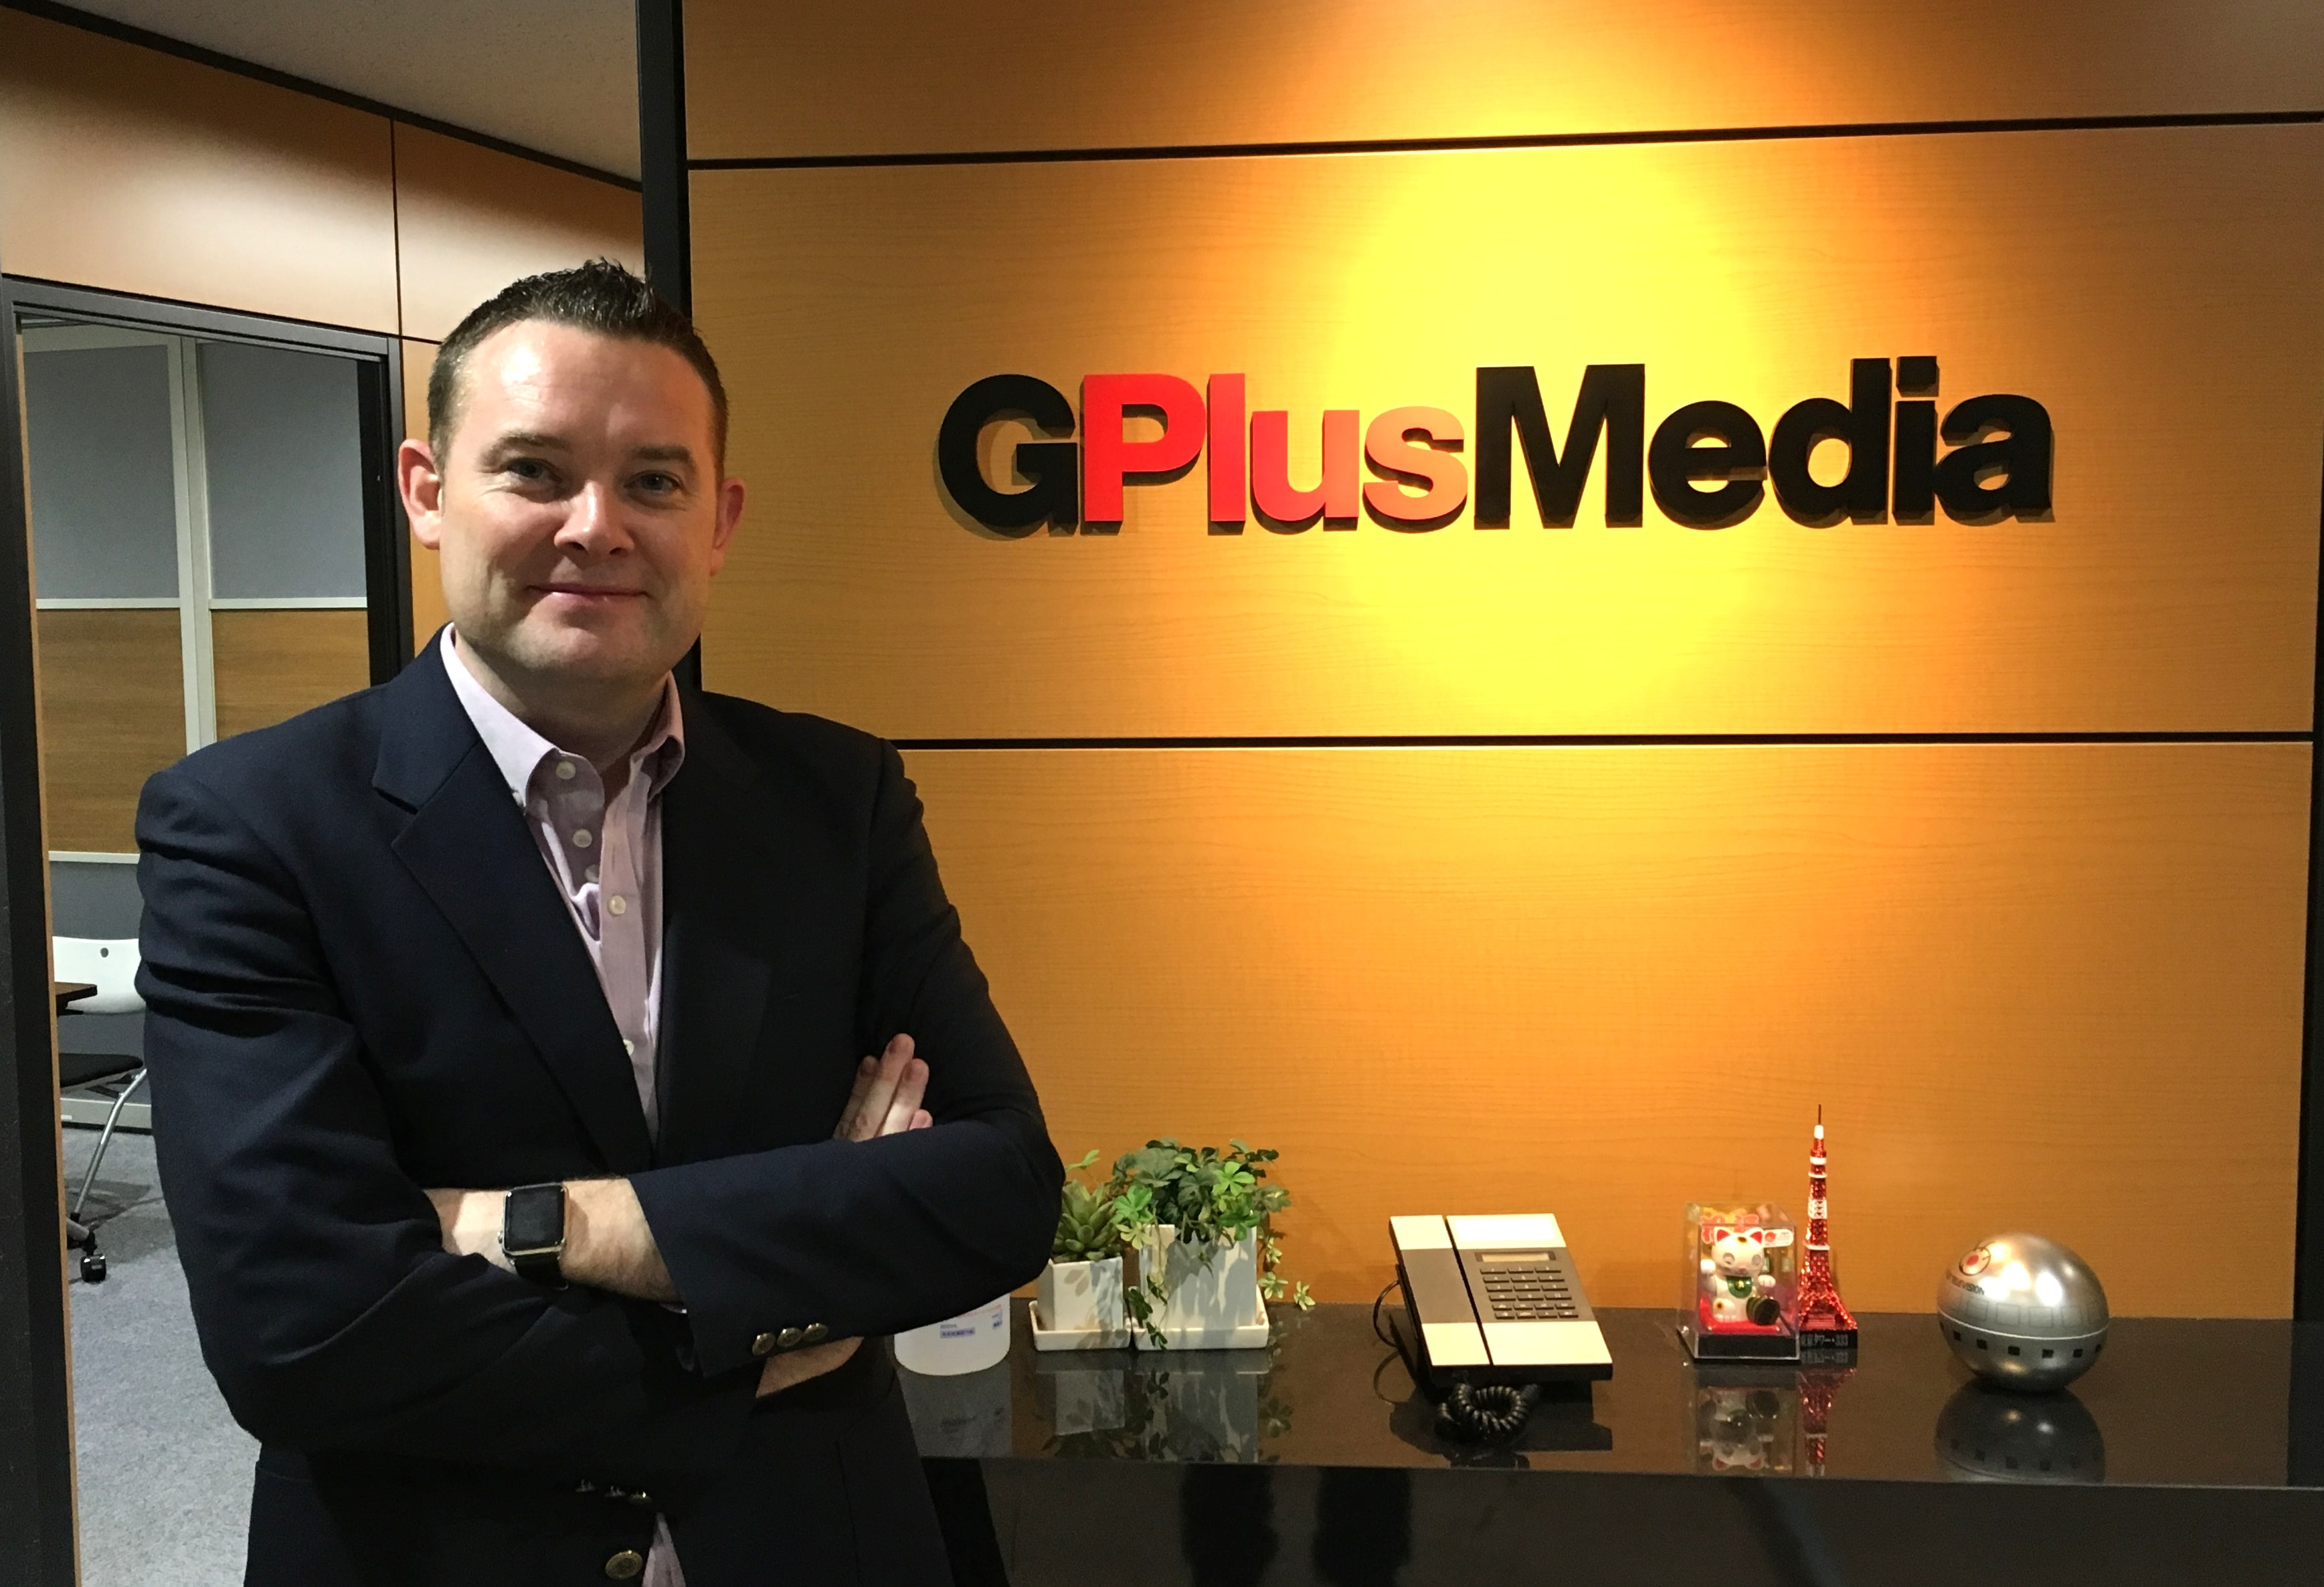 Member Feature: GPlus Media